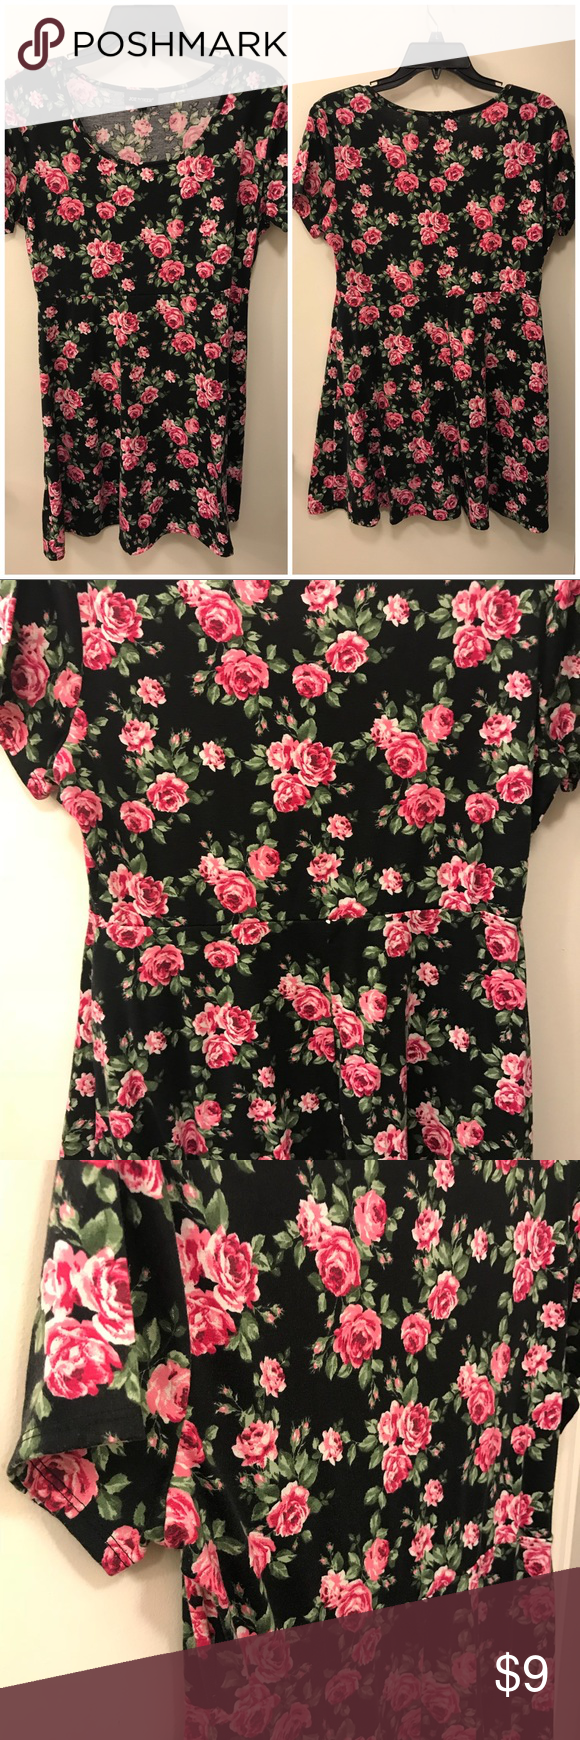 eee8f0d2e506 Spotted while shopping on Poshmark: Joe Boxer Juniors' Skater Dress - Floral  Size XL! #poshmark #fashion #shopping #style #Joe Boxer #Dresses & Skirts